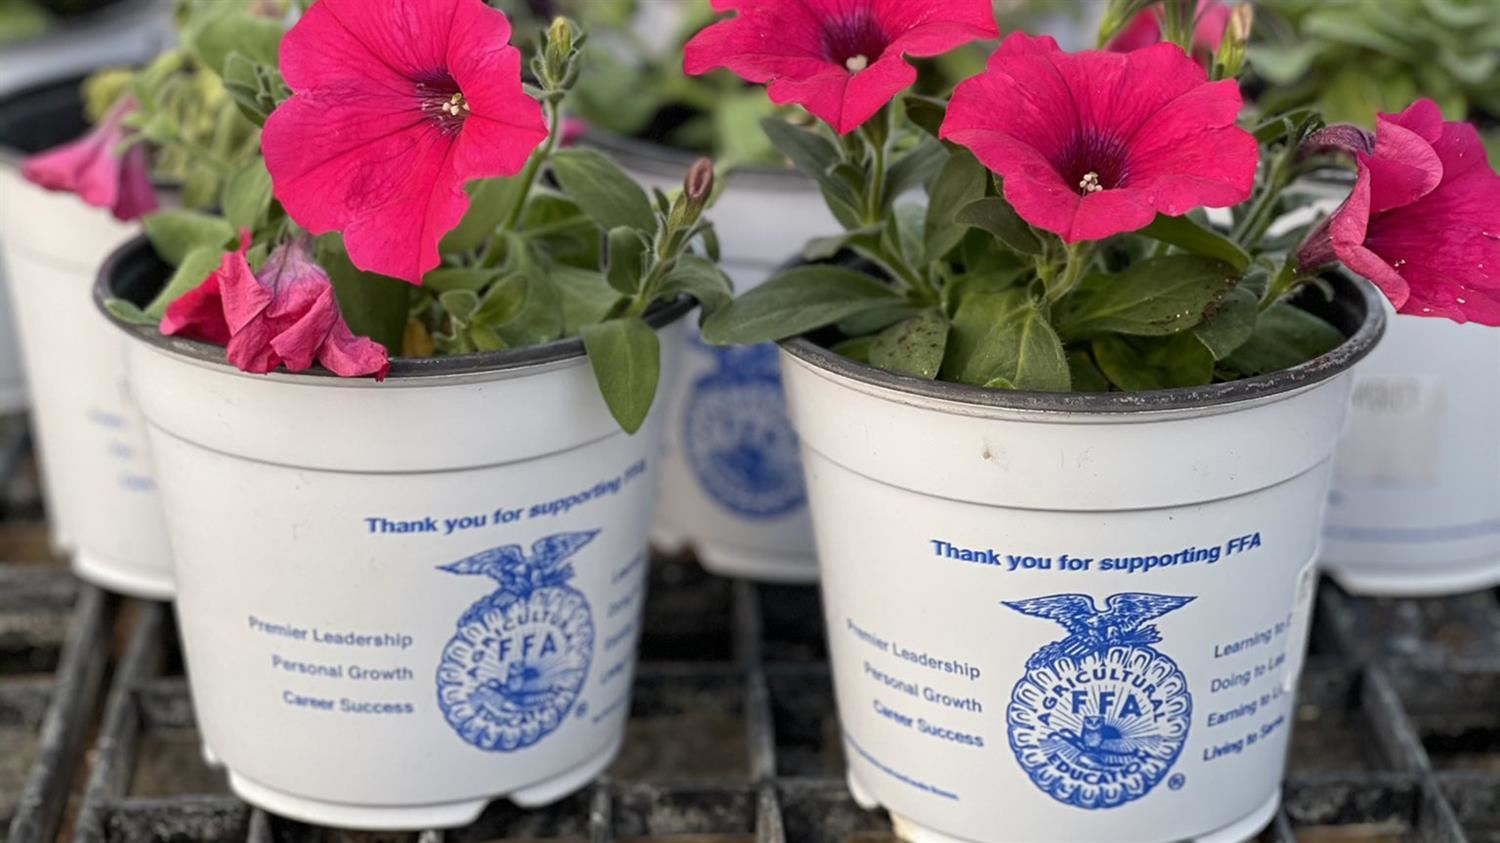 TECC-W Horticulture Students and Lewisville FFA Host Plant Sale